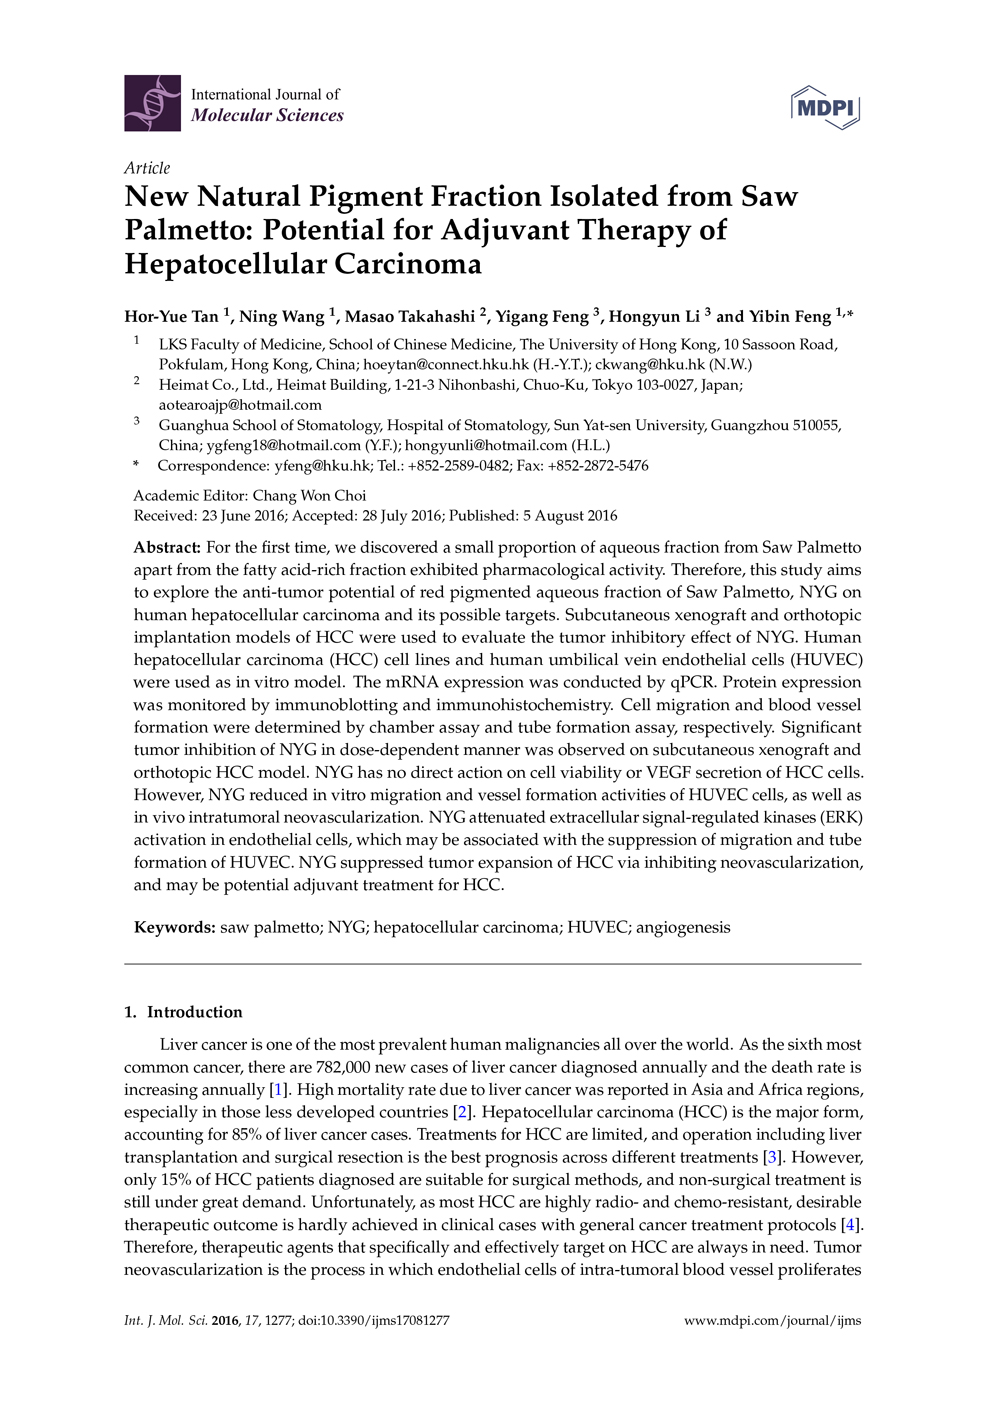 Potential of Pigment from Saw Palmetto for Adjuvant Therapy of Hepatocellular Carcinoma P1